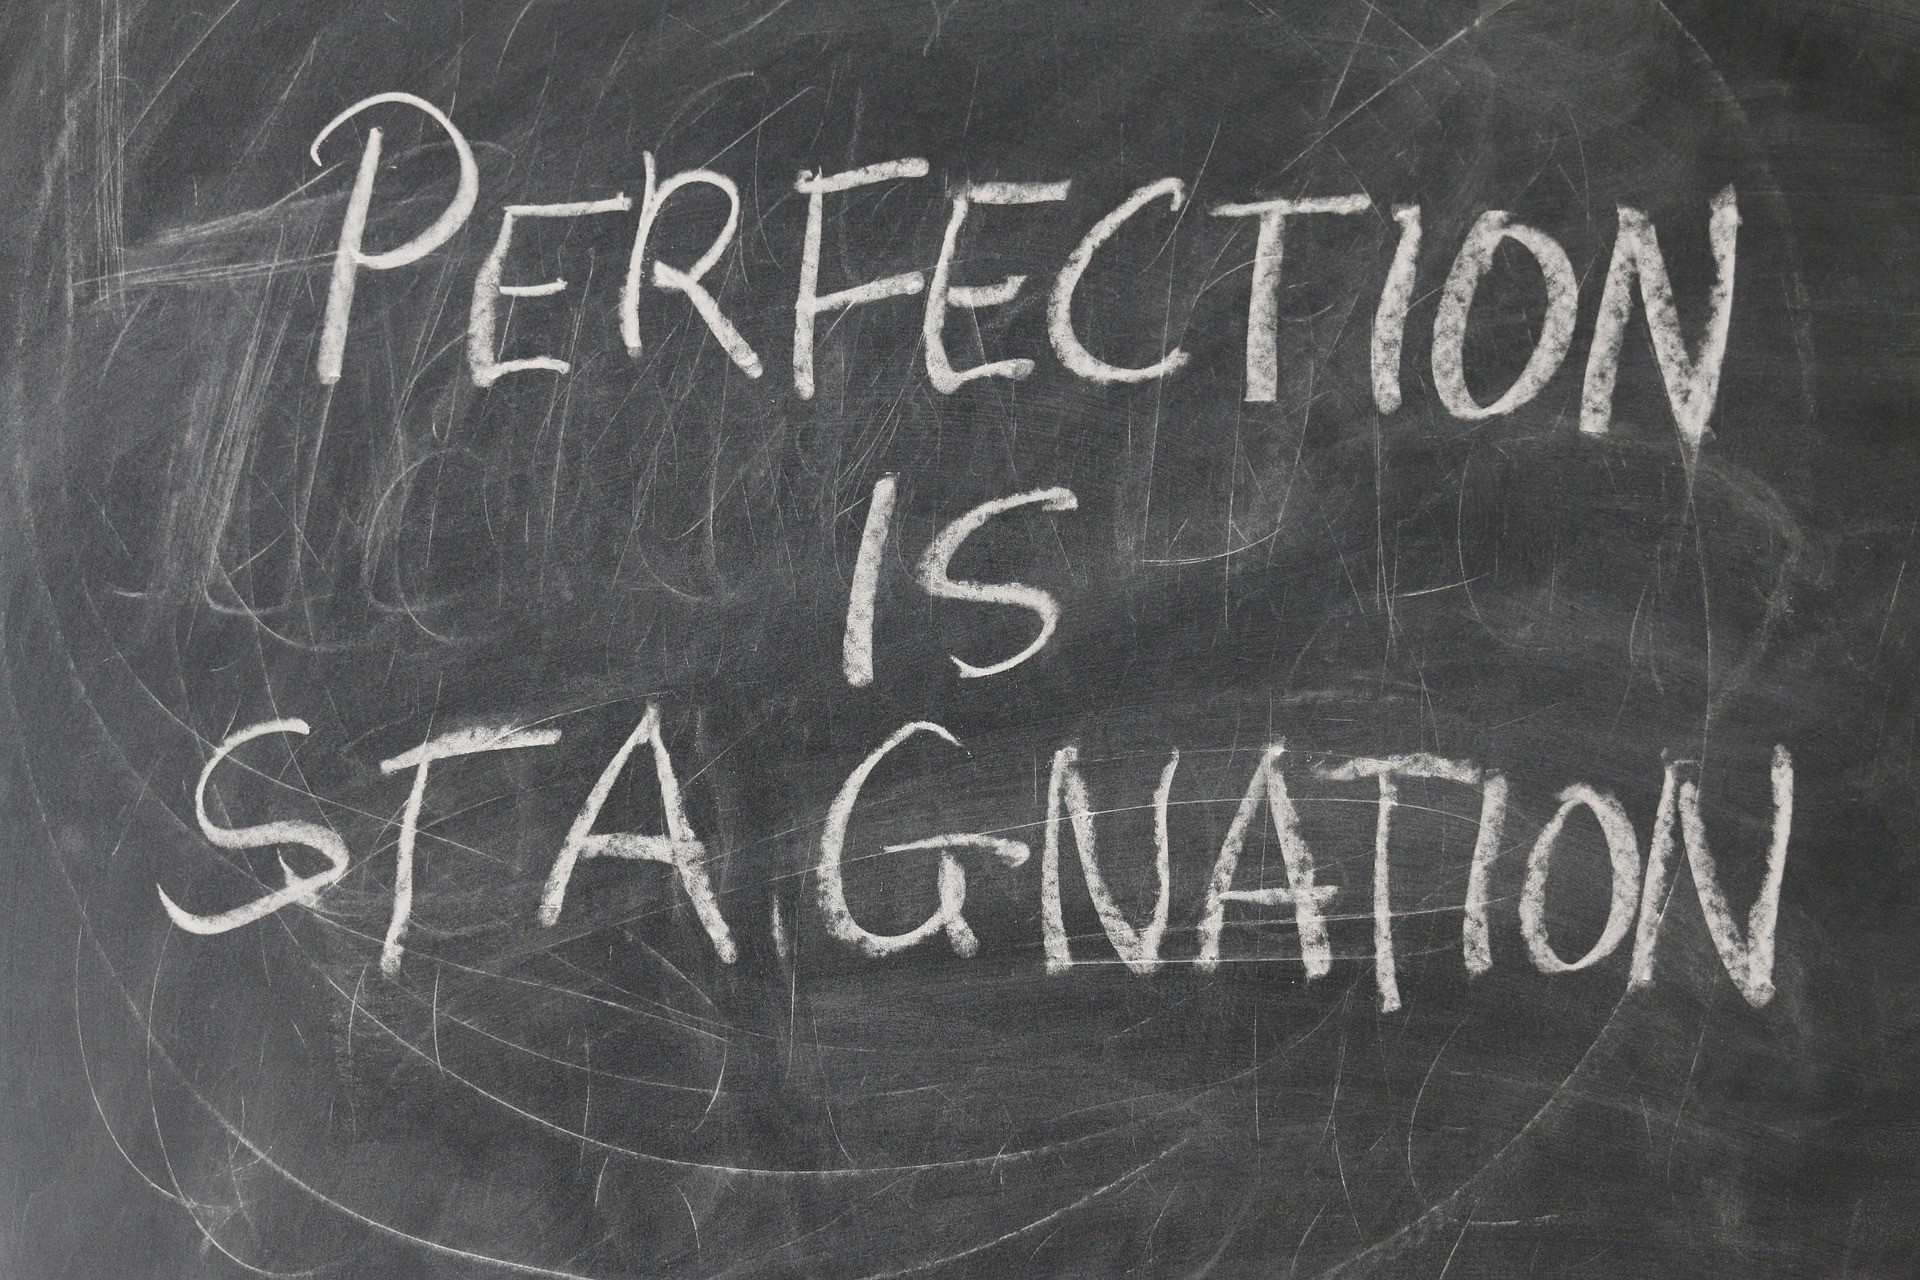 Perfection is stagnation on blackboard